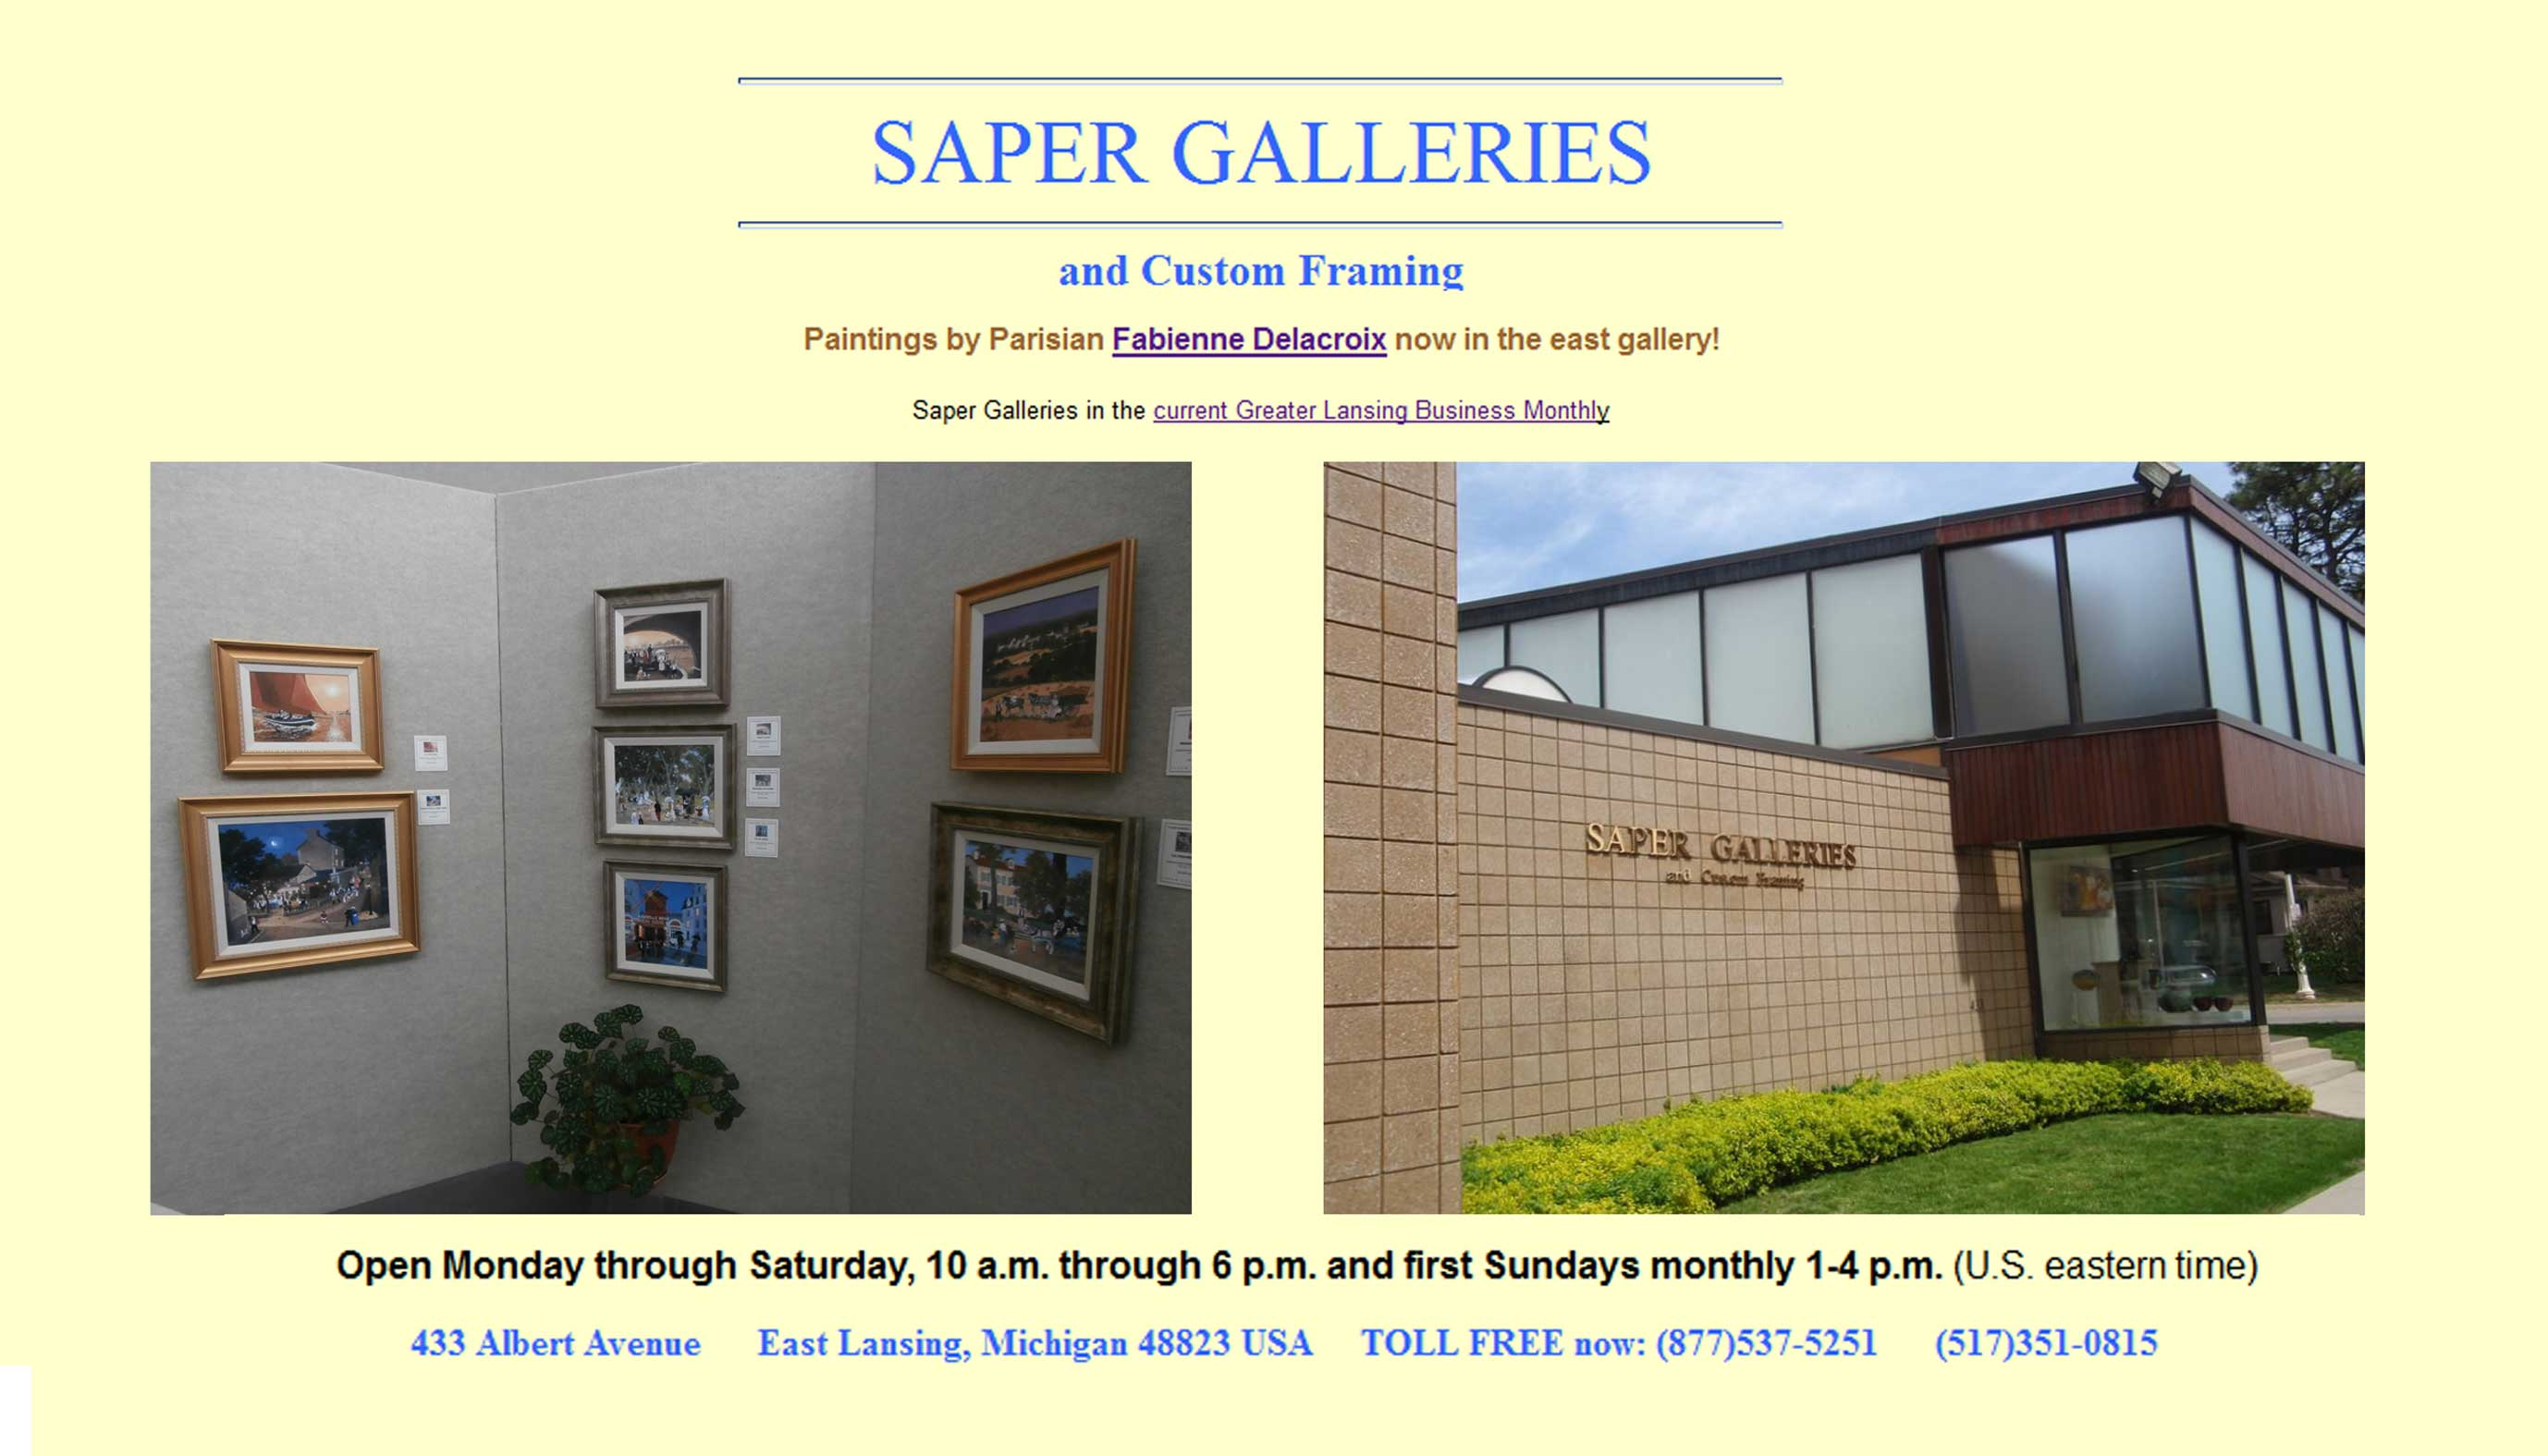 SAPER GALLERIES - Paintings by Parisian Fabienne Delacroix now in the east gallery